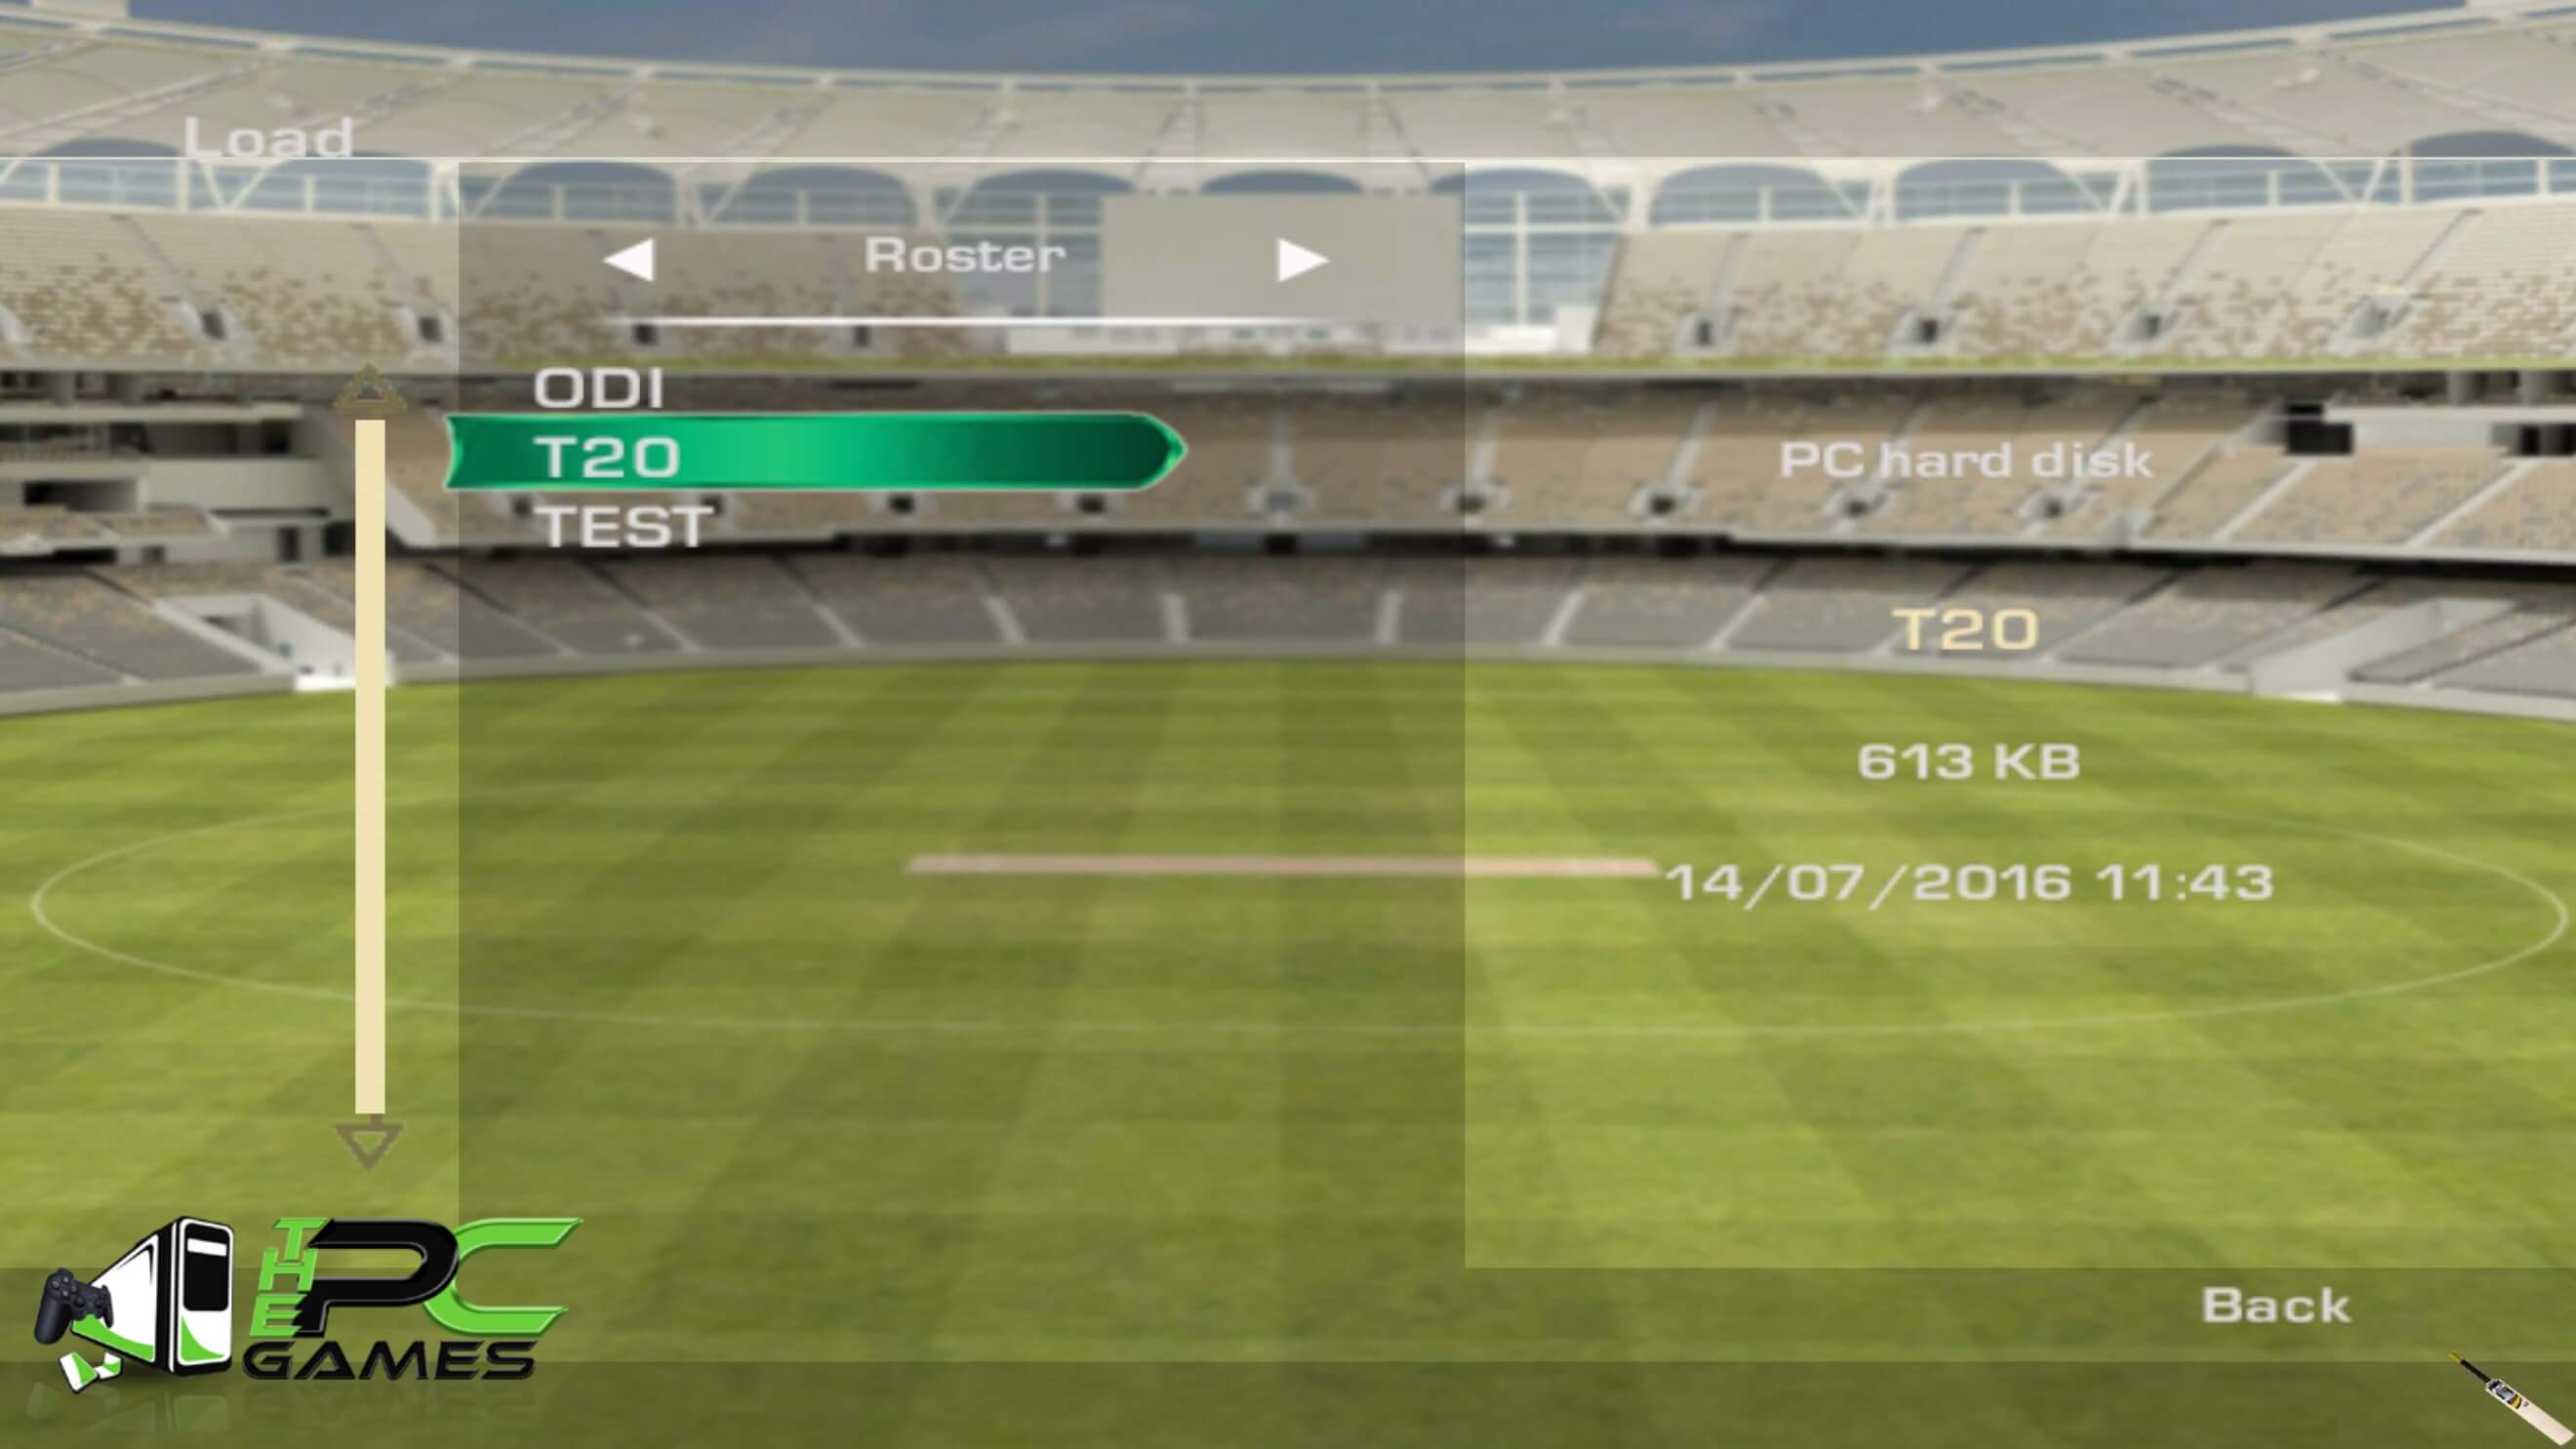 How to Load Roster (T20-ODI-Test) Tutorial (4)